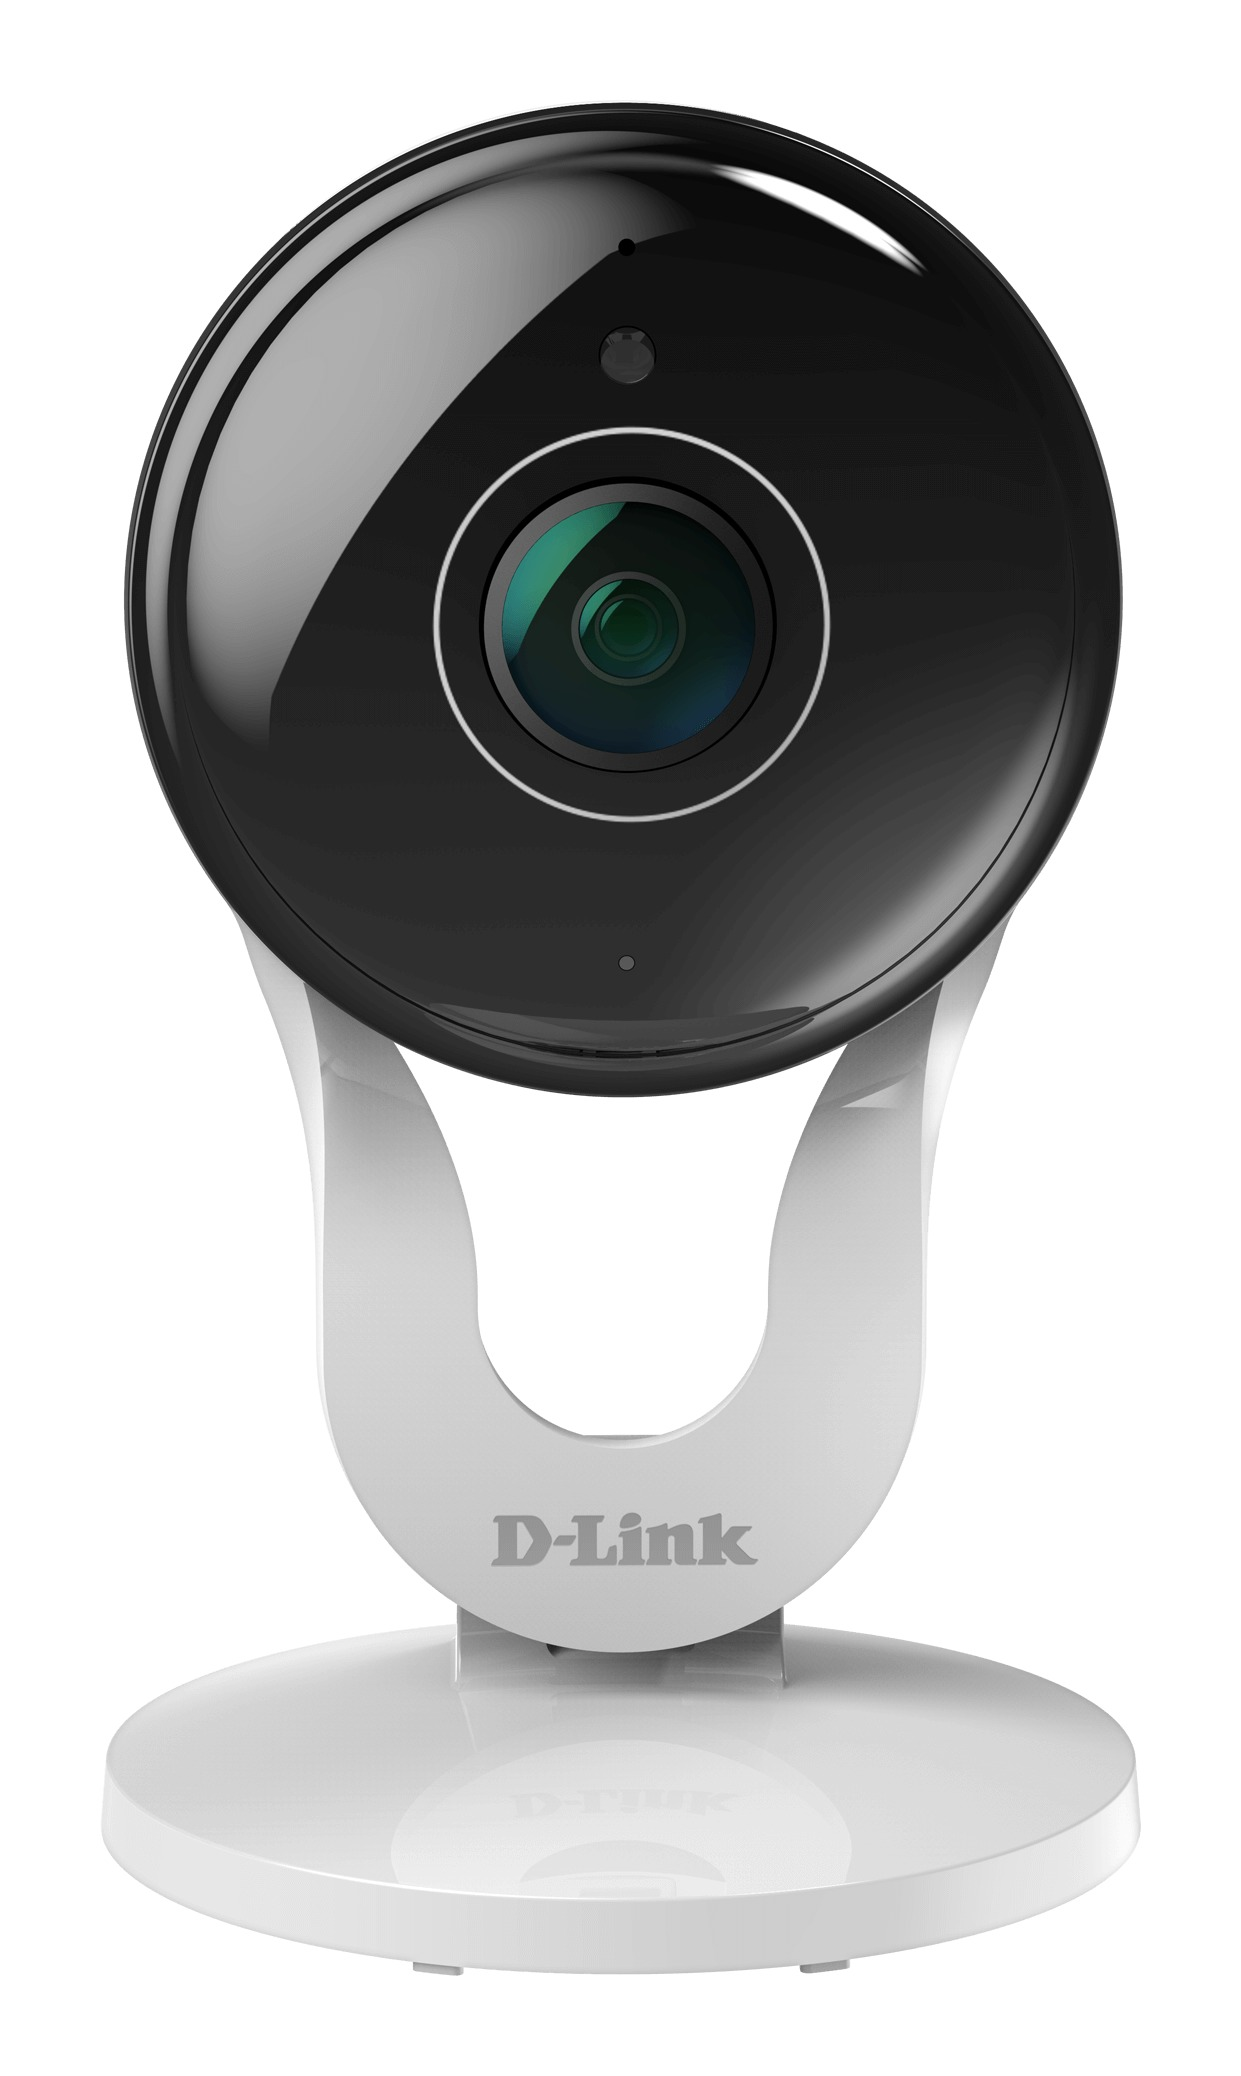 D-Link ip-camera DCS-8300LH Full HD Wifi Camera